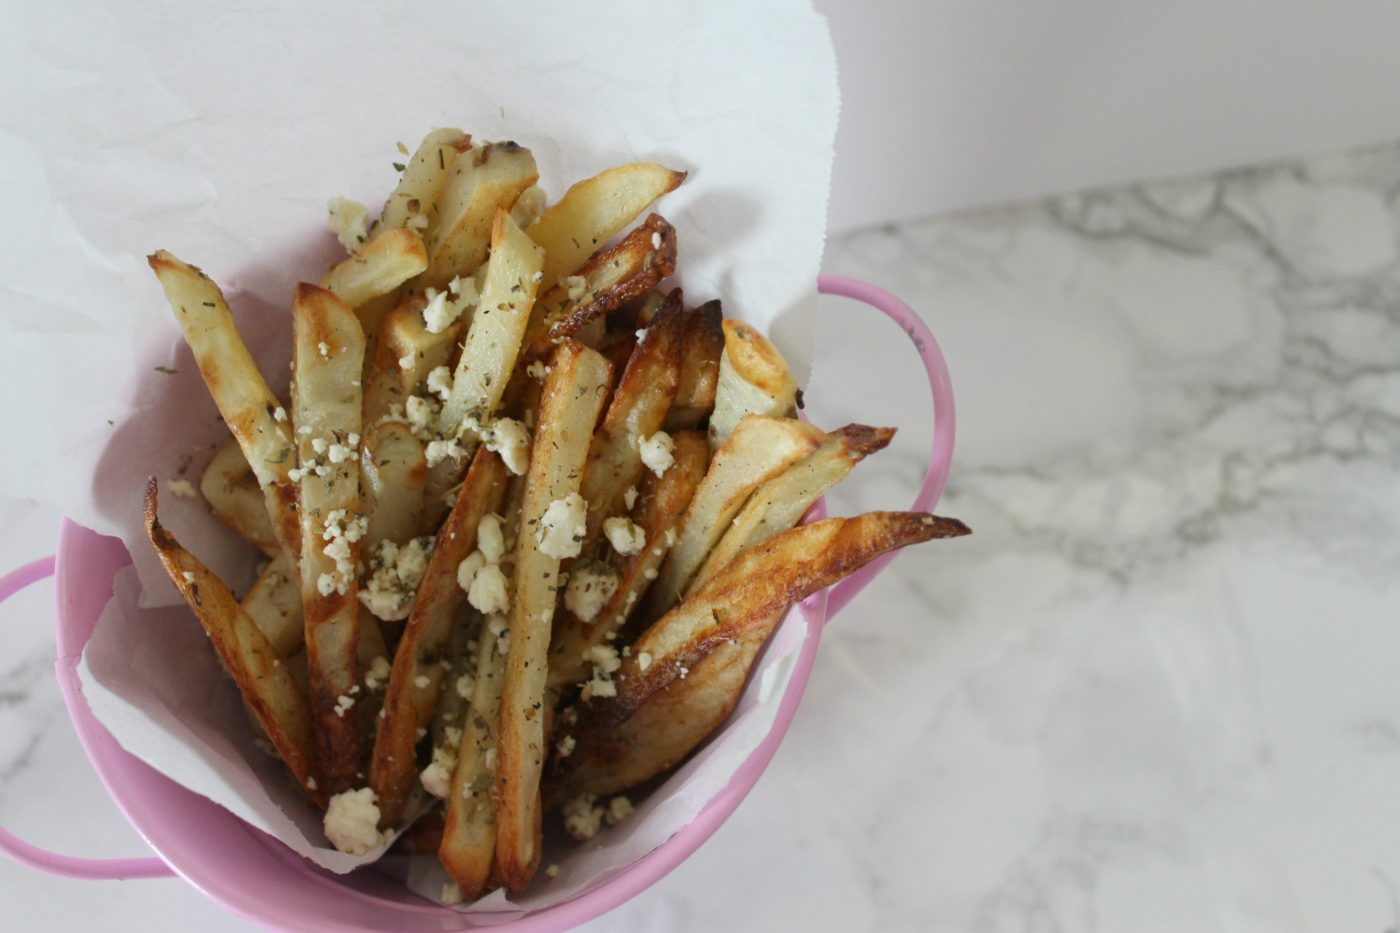 Greek fries are great with gyros or I like them to accompany my grilled cheese sandwiches. It sort of feels fancy.